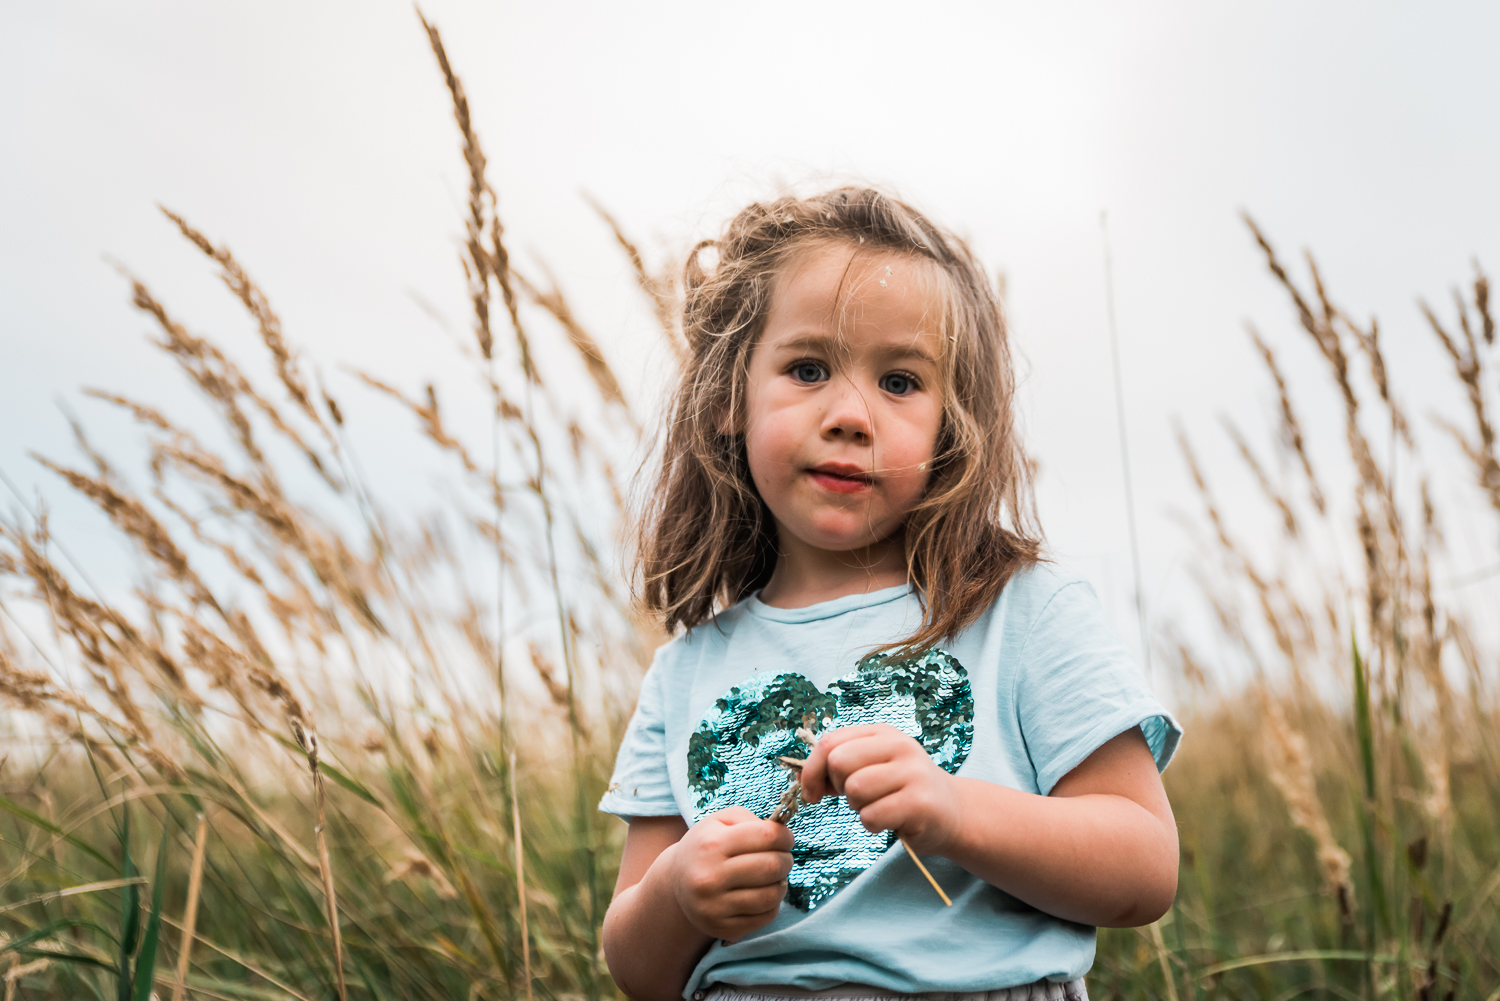 Portrait of a child with grass seeds in her hair